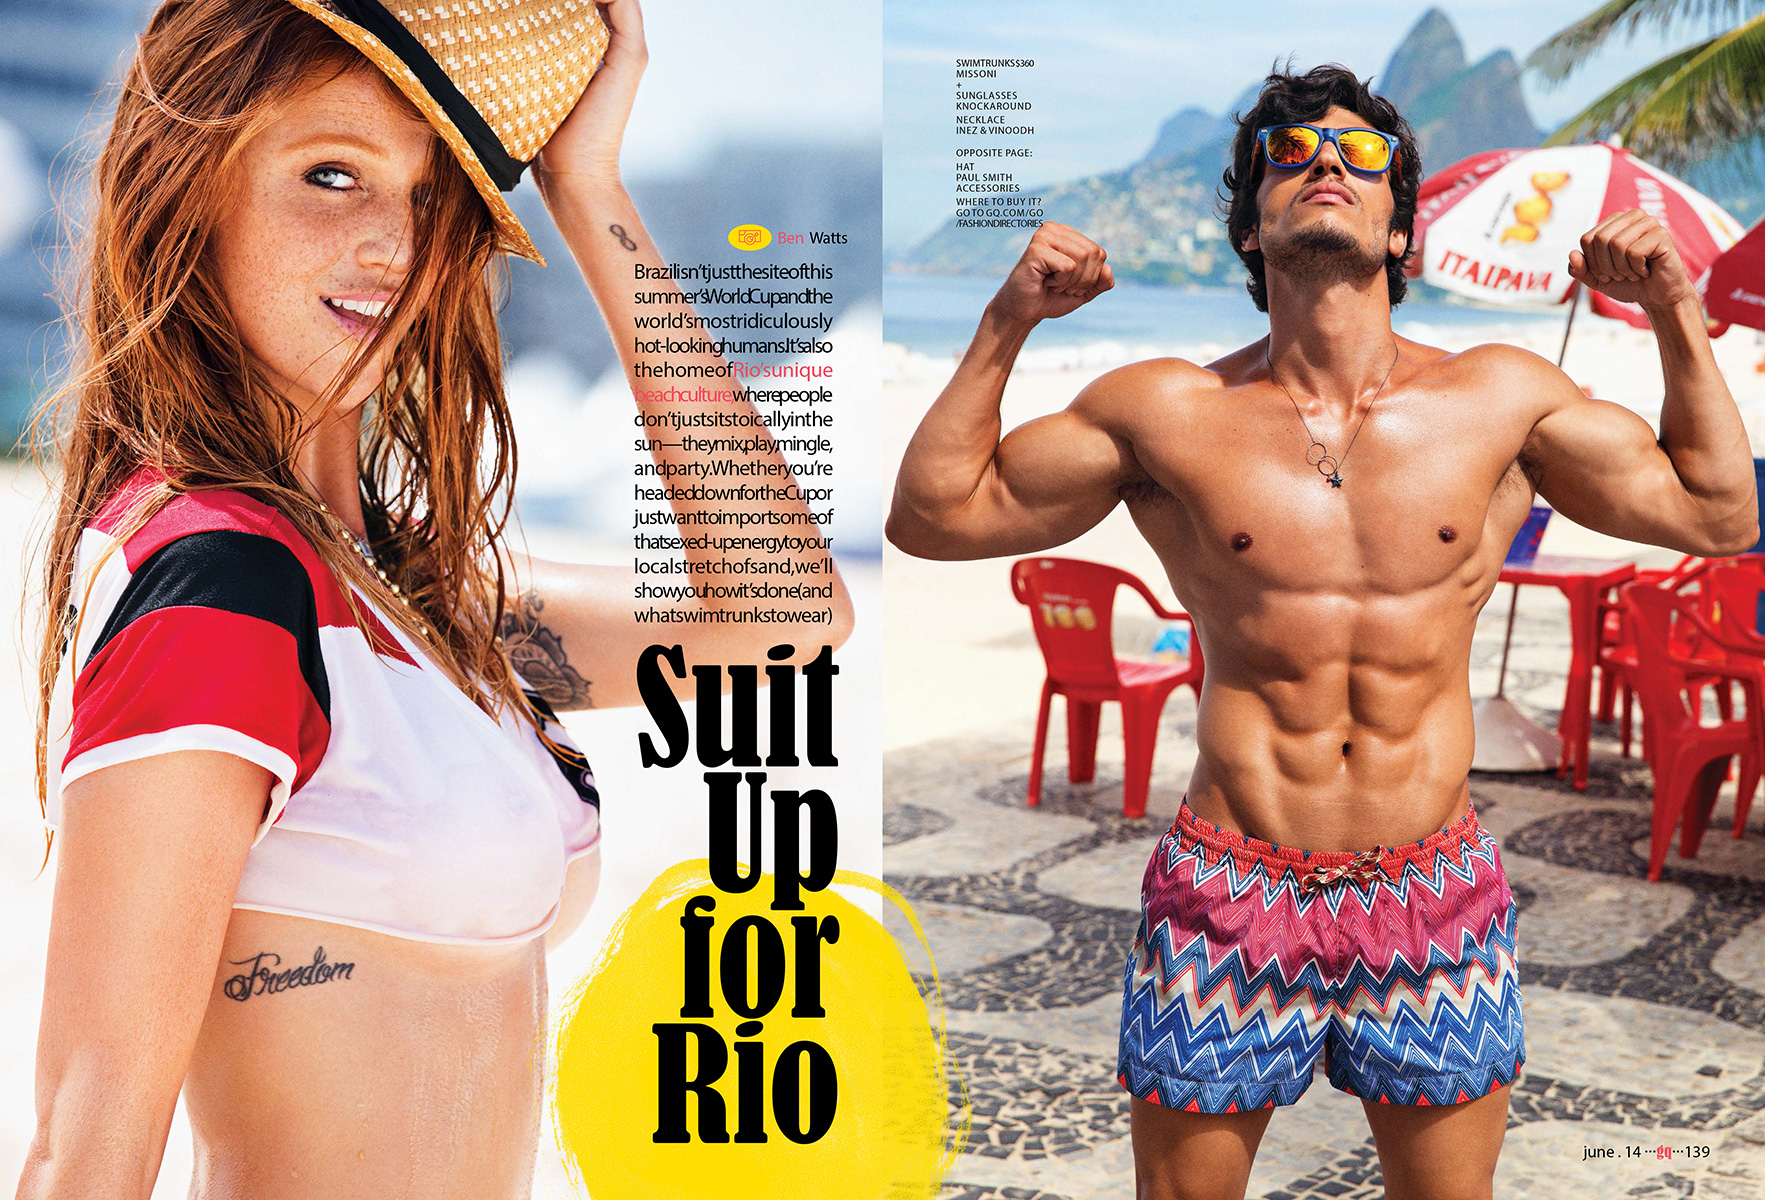 Suit-Up-for-Rio-002